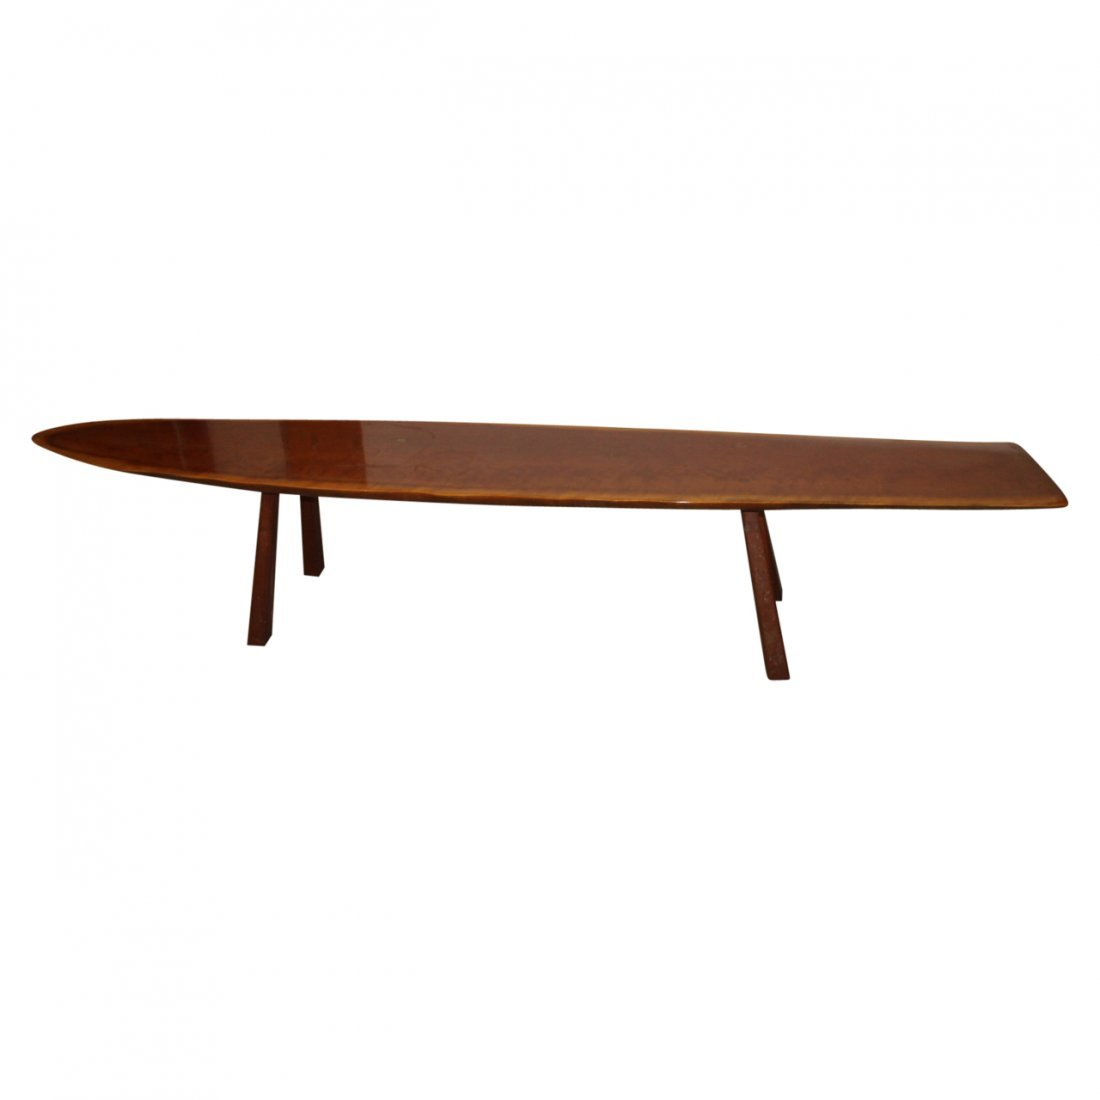 Rare MCM Surfboard Coffee Table